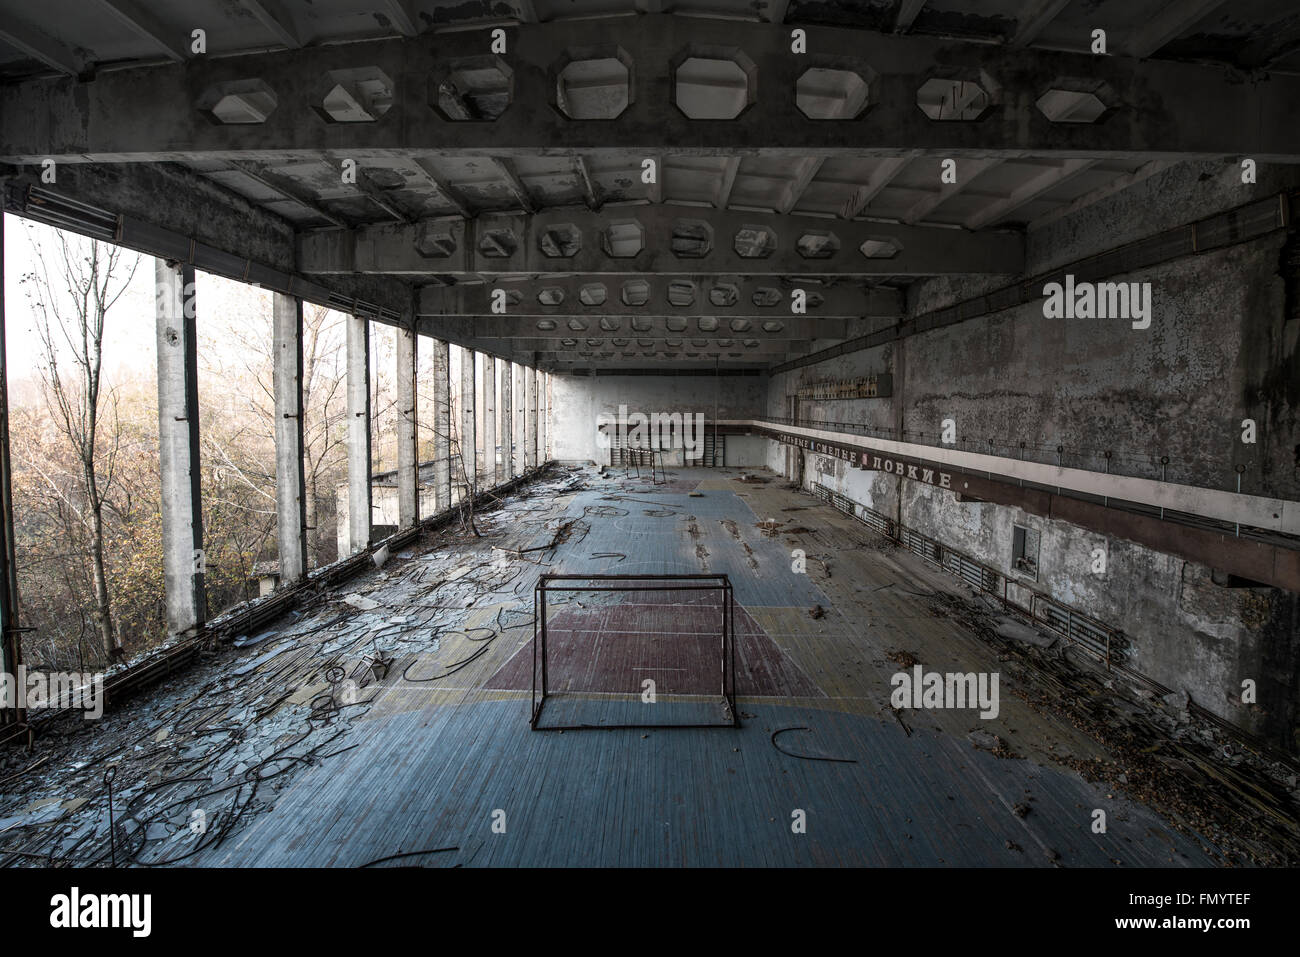 Gymnasium in Pripyat, Chernobyl scene of 1986 nuclear disaster - Stock Image